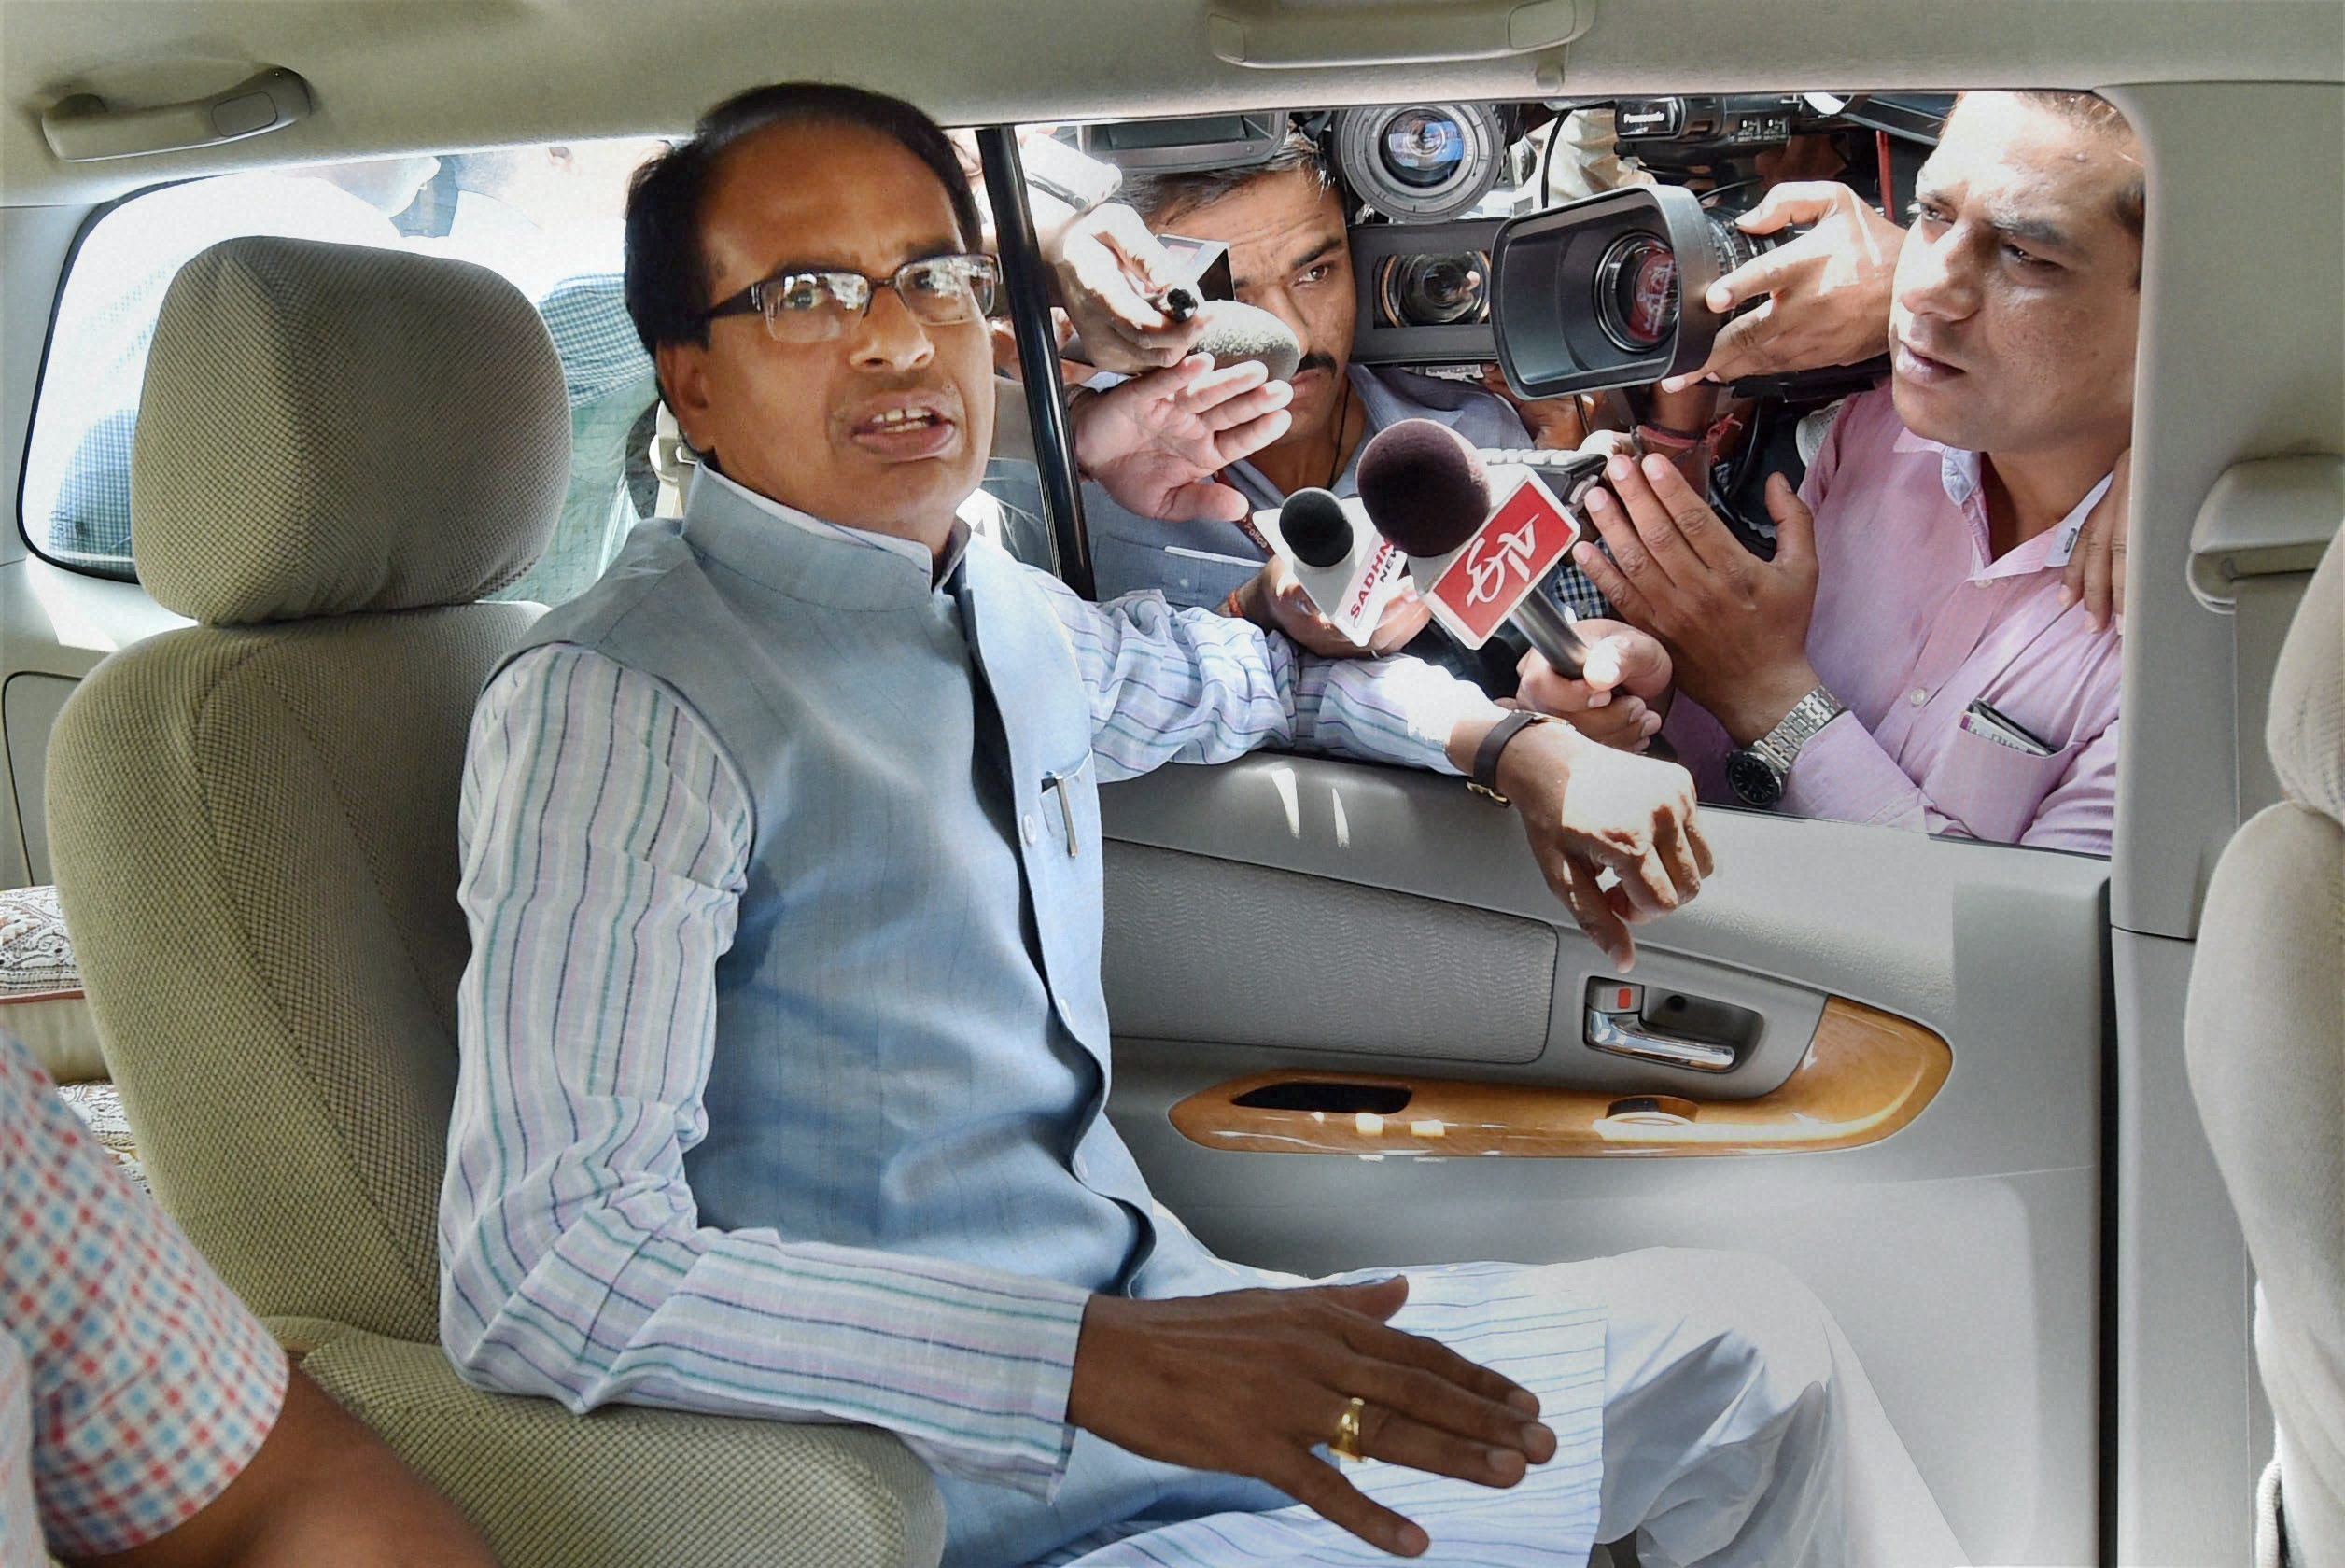 Madhya Pradesh Chief Minister Shivraj Singh Chauhan leaves after attending the 4th meeting of Chief Minister's sub group Niti Aayog meeting in New Delhi on Saturday. PTI Photo by Vijay Verma